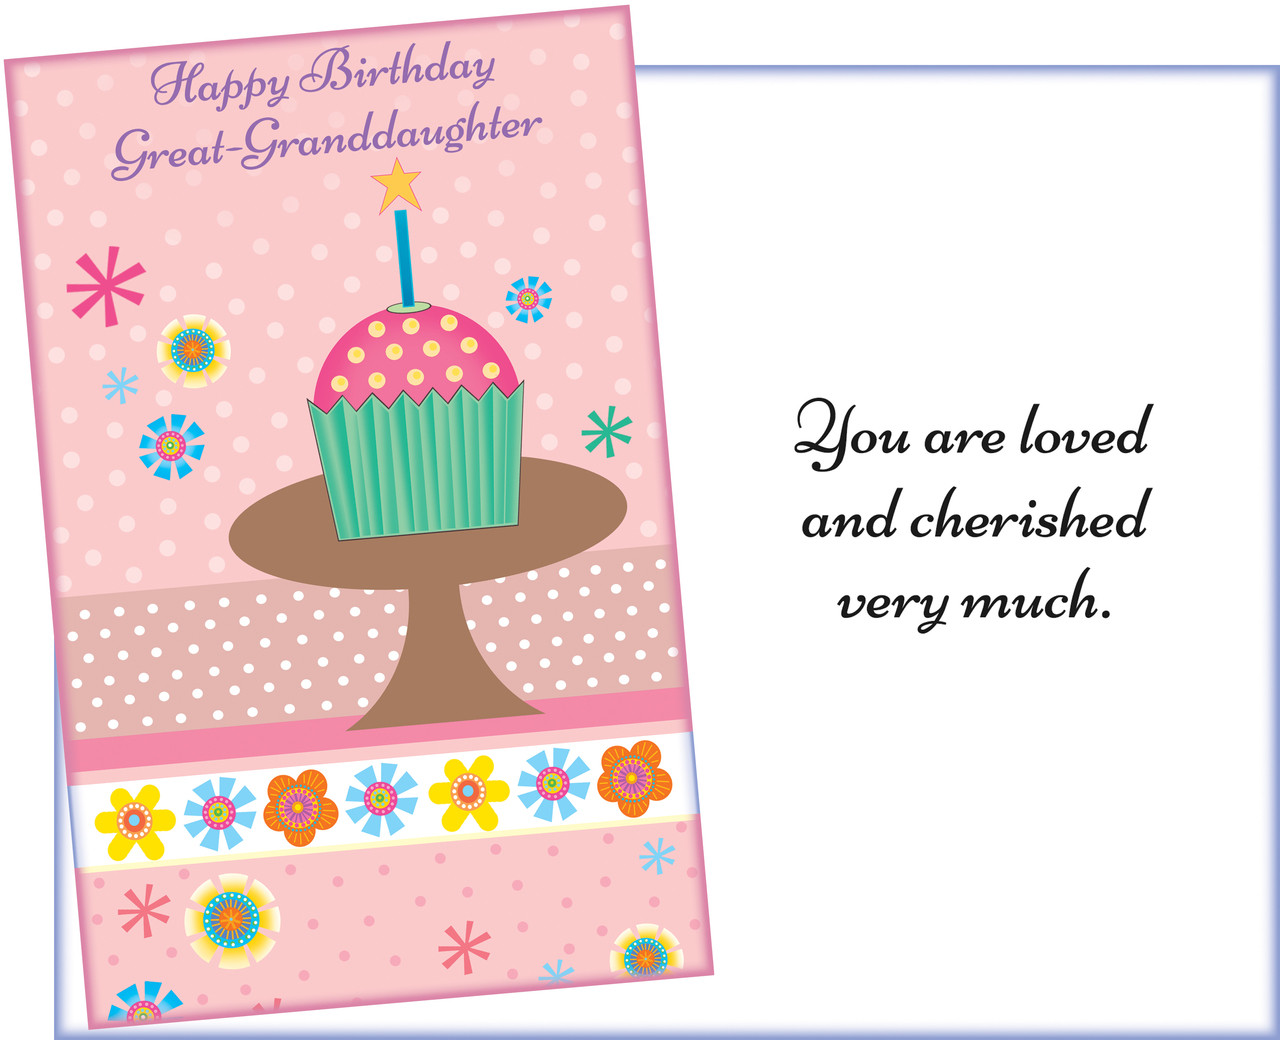 Wholesale Great Granddaughter Greeting Cards